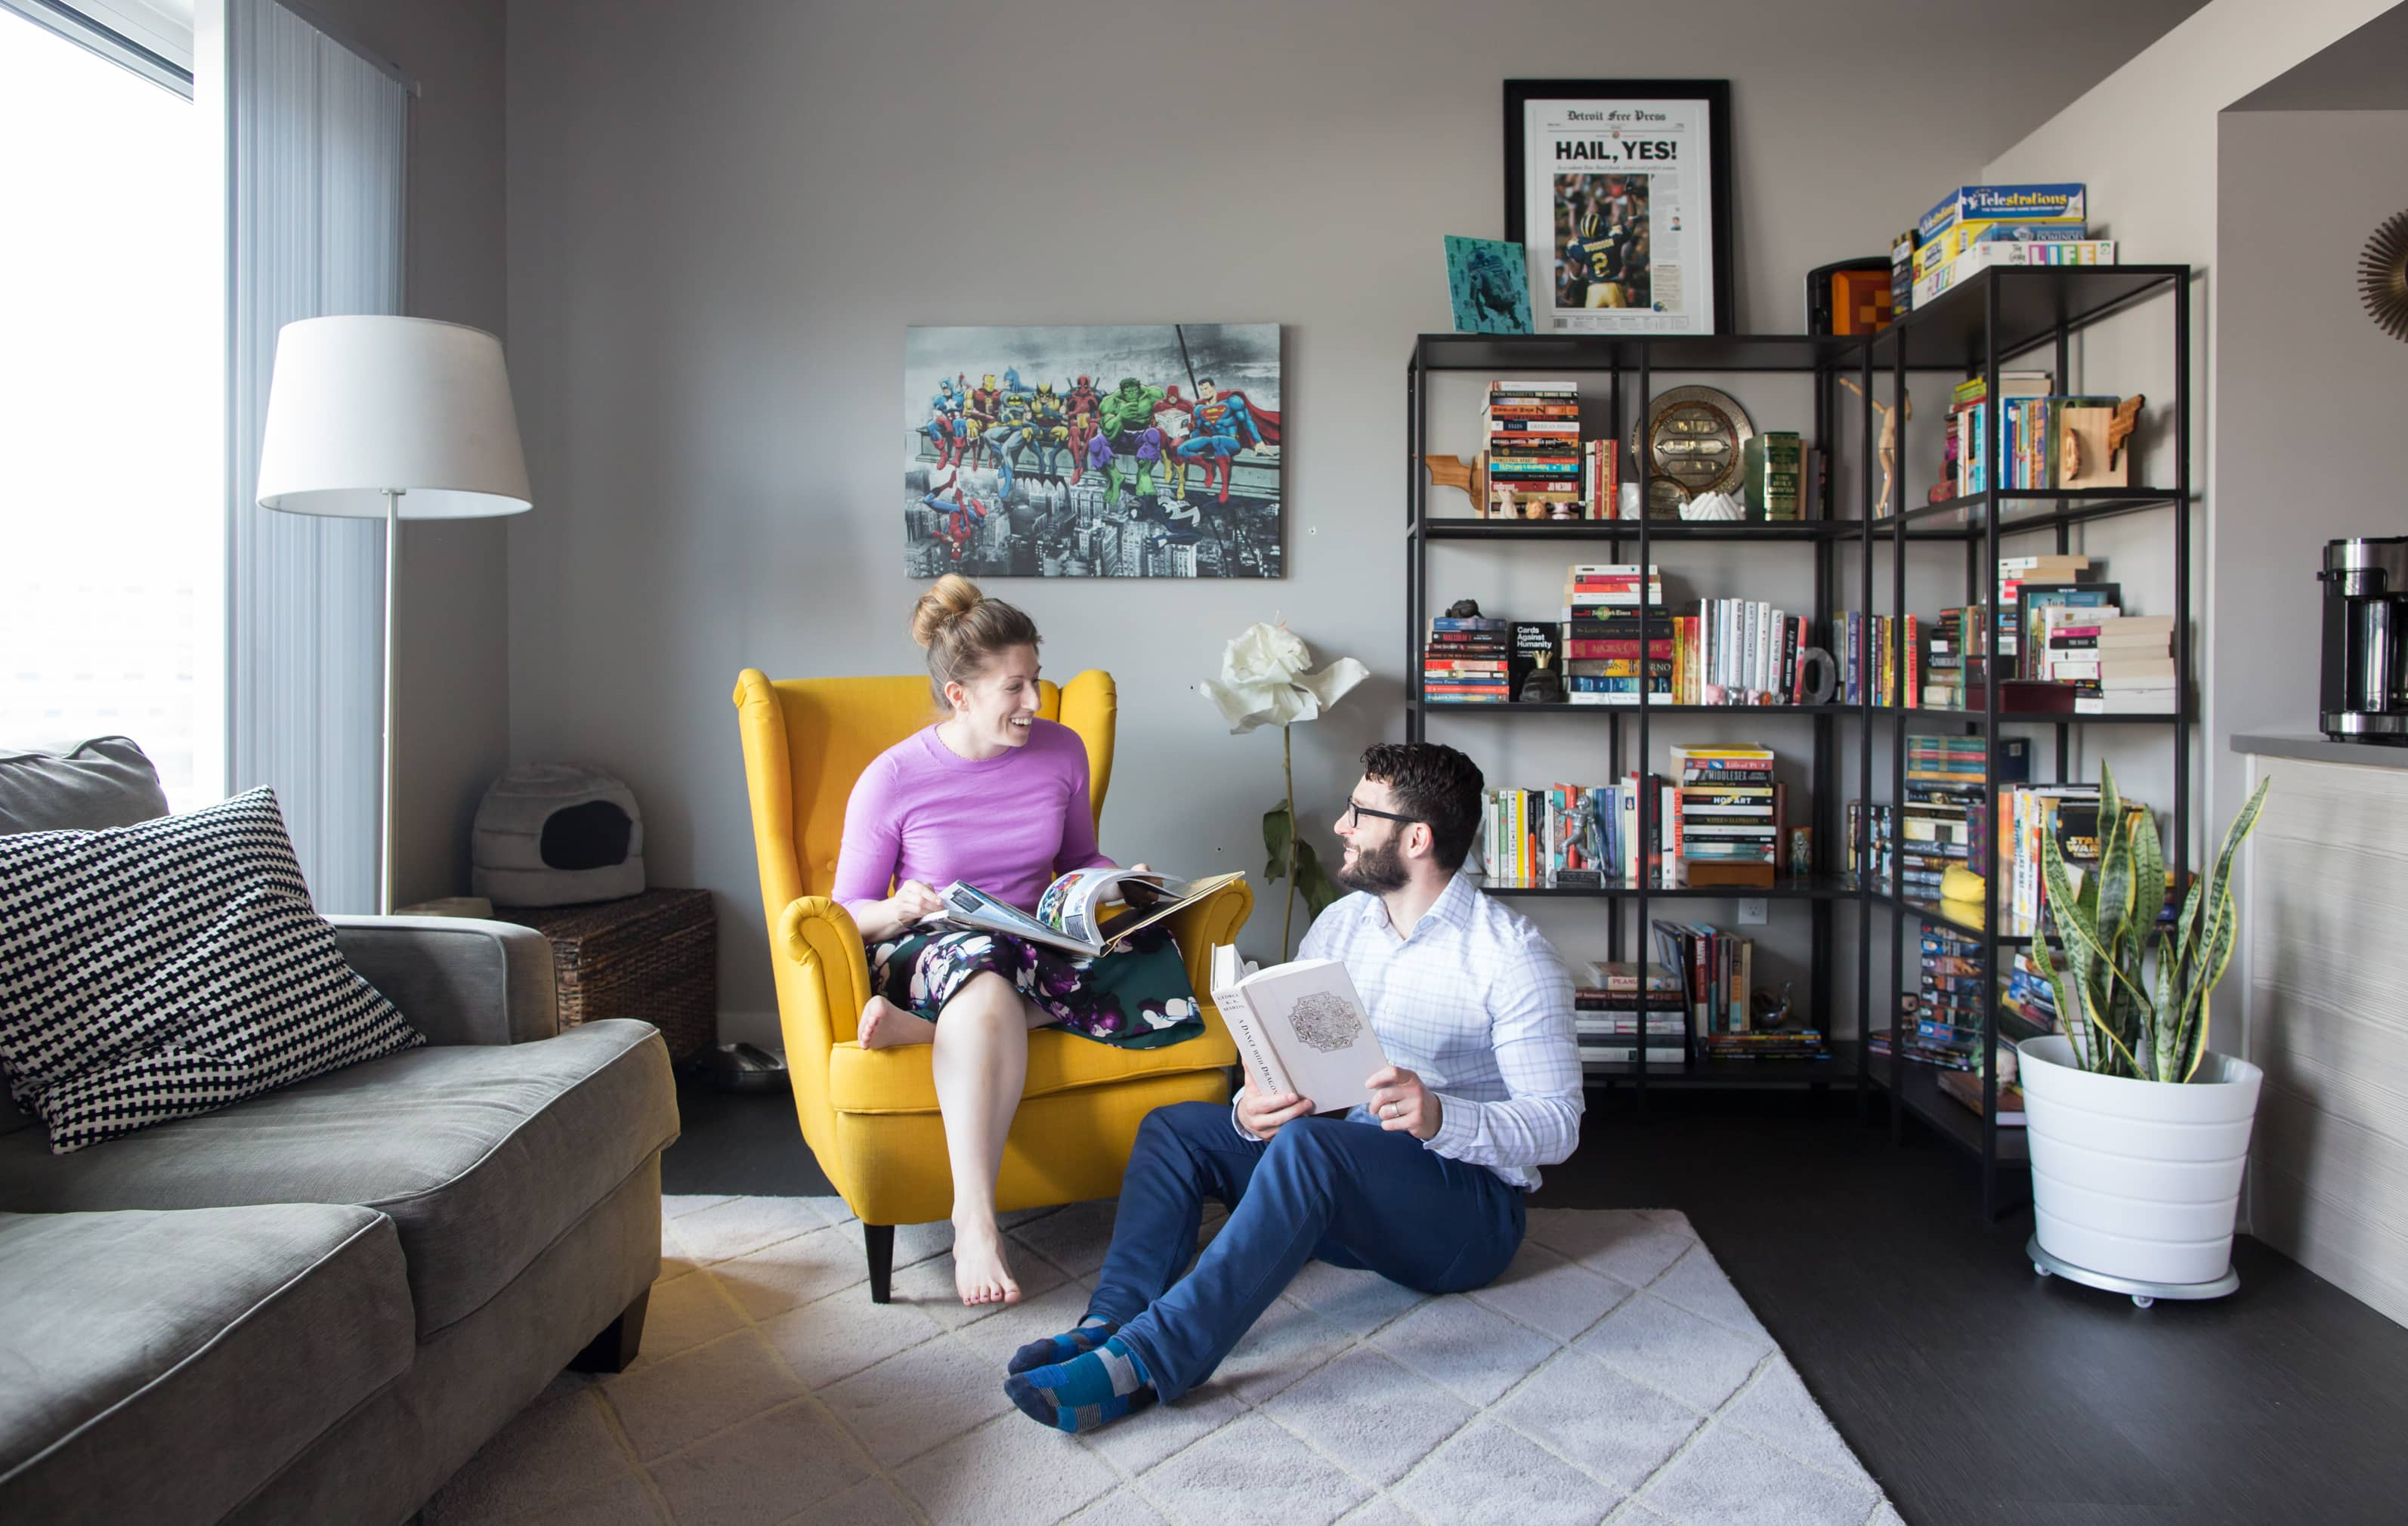 House Tour: A Small, Minimal Shared Michigan Studio | Apartment Therapy